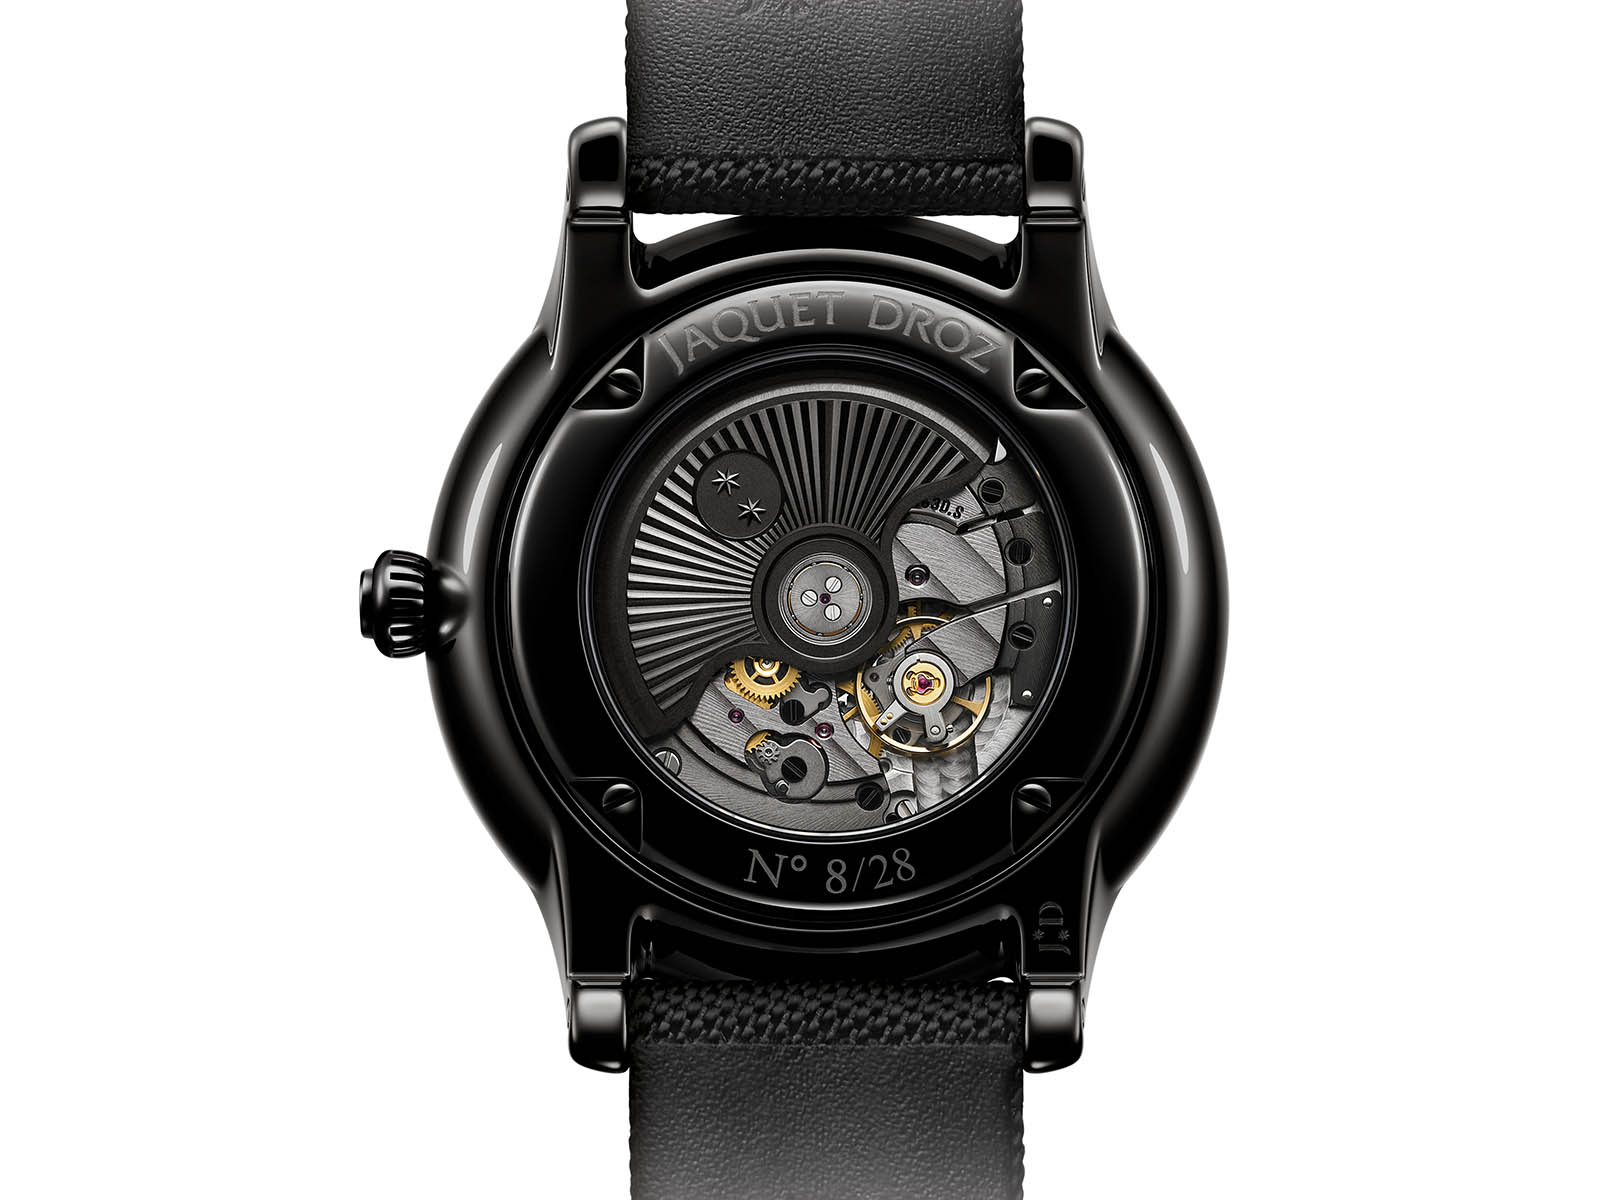 Jaquet-Droz-Grande-Seconde-Black-Ceramic-Clous-De-Paris-2.jpg